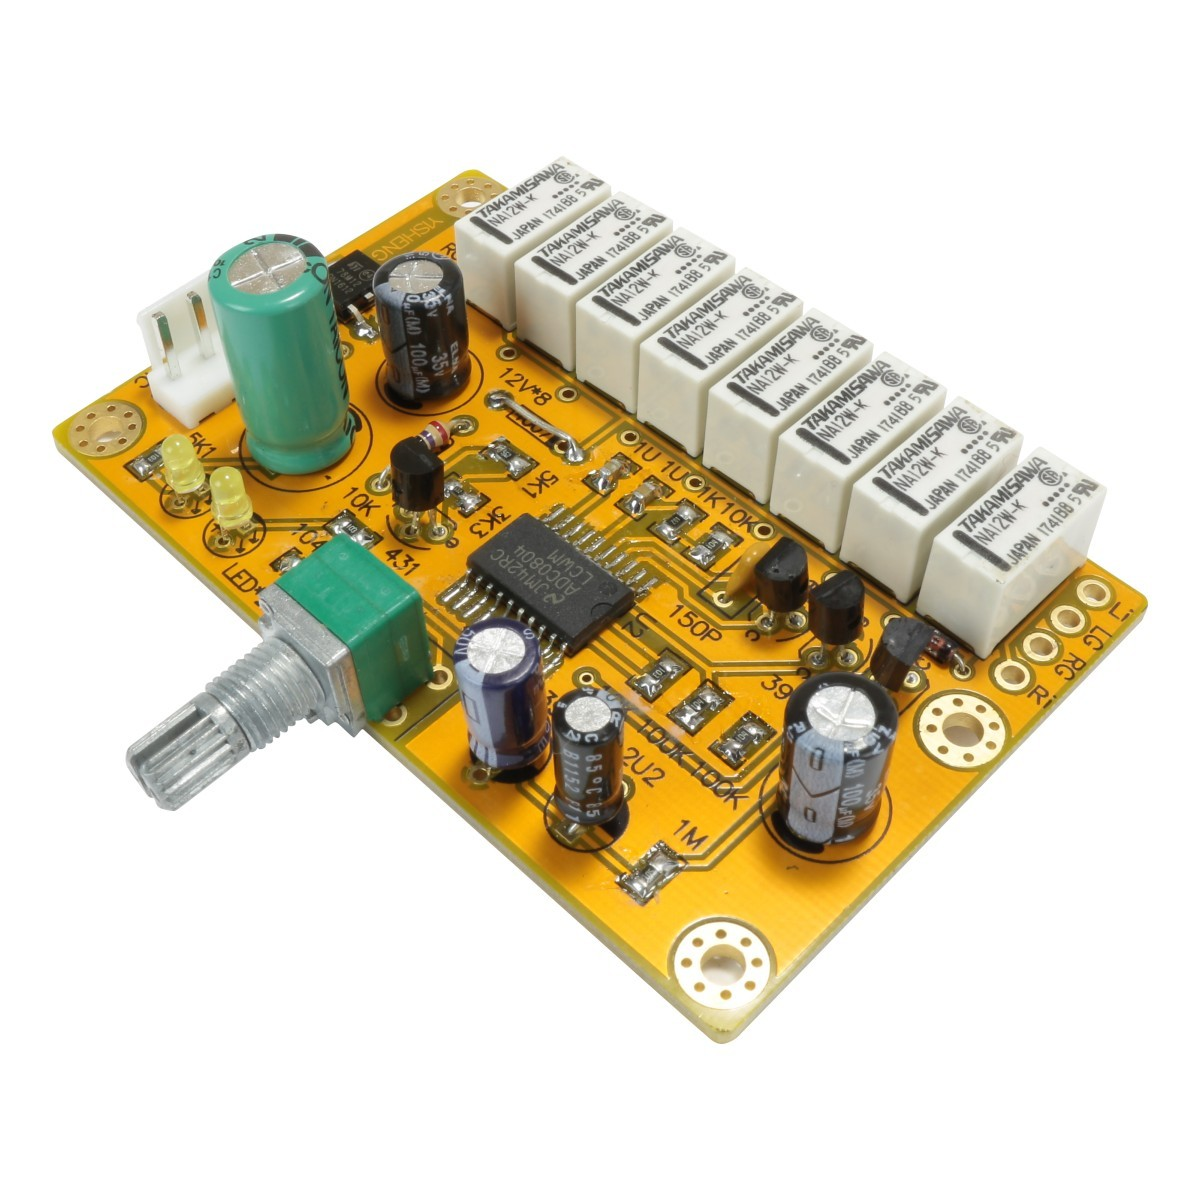 Passive Audio ladder Volume control module bit 256 levels by logic door